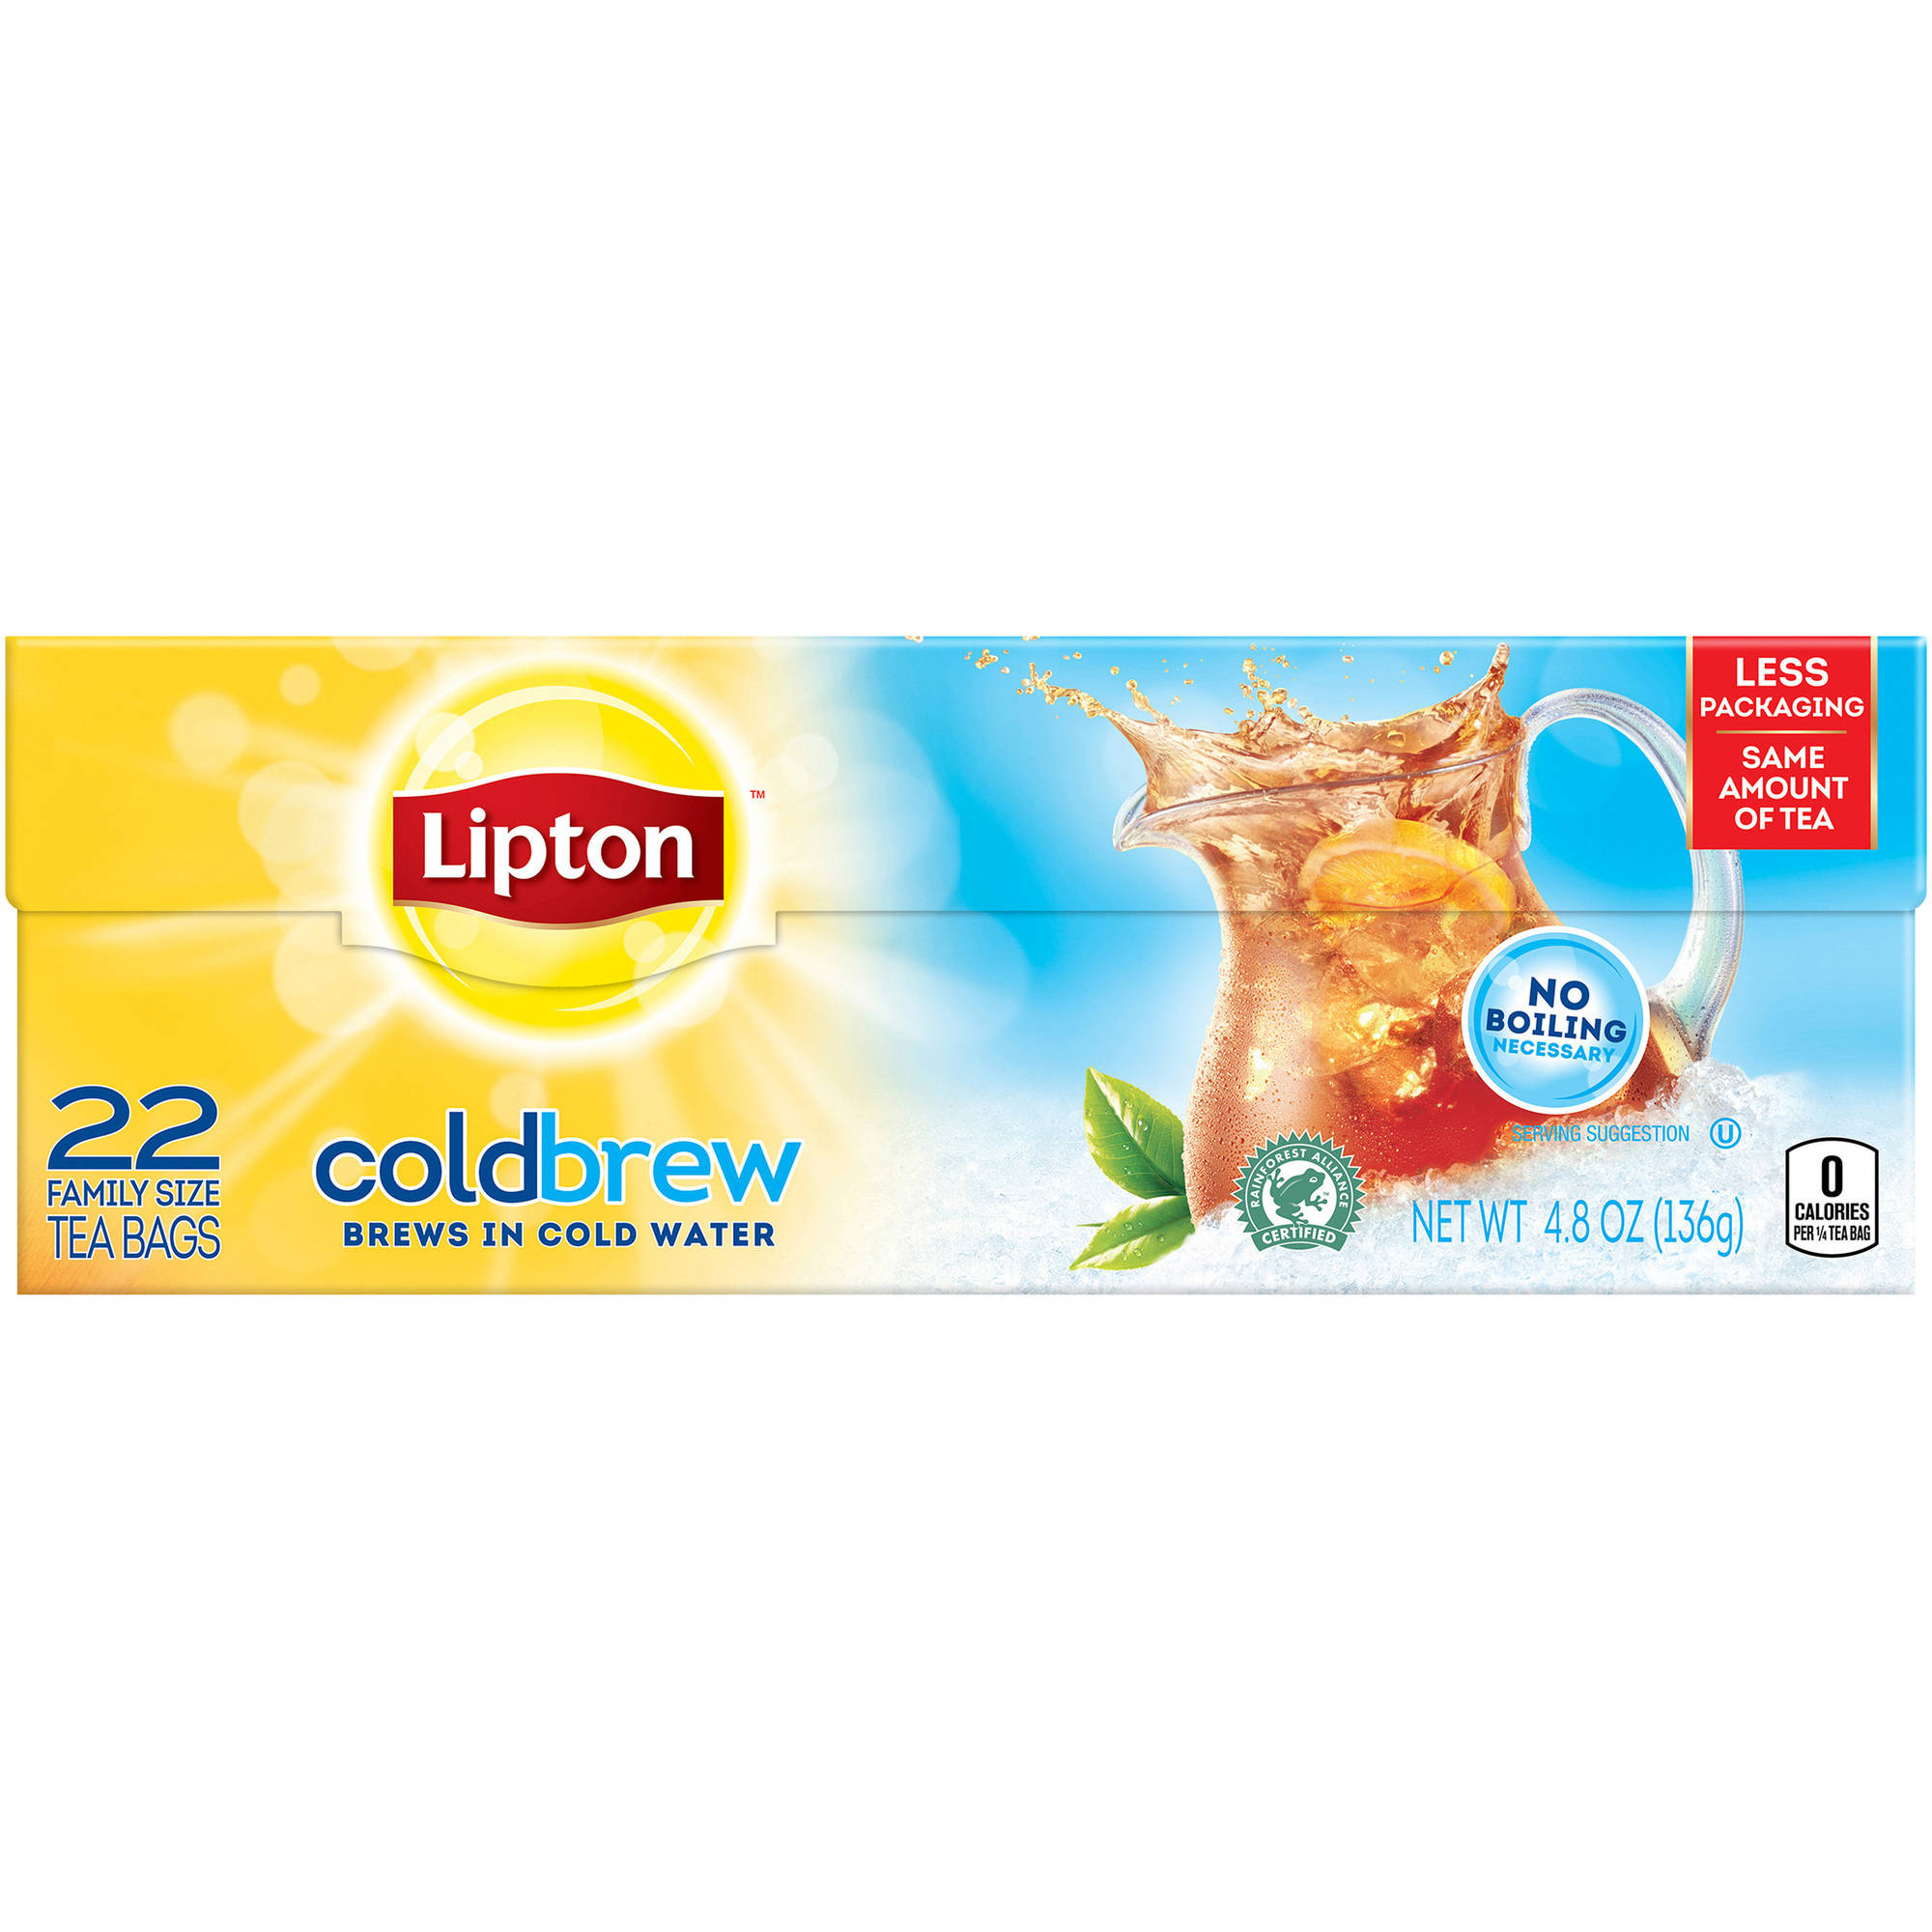 Lipton Cold Brew Family Size Black Iced Tea Bags, 22 ct